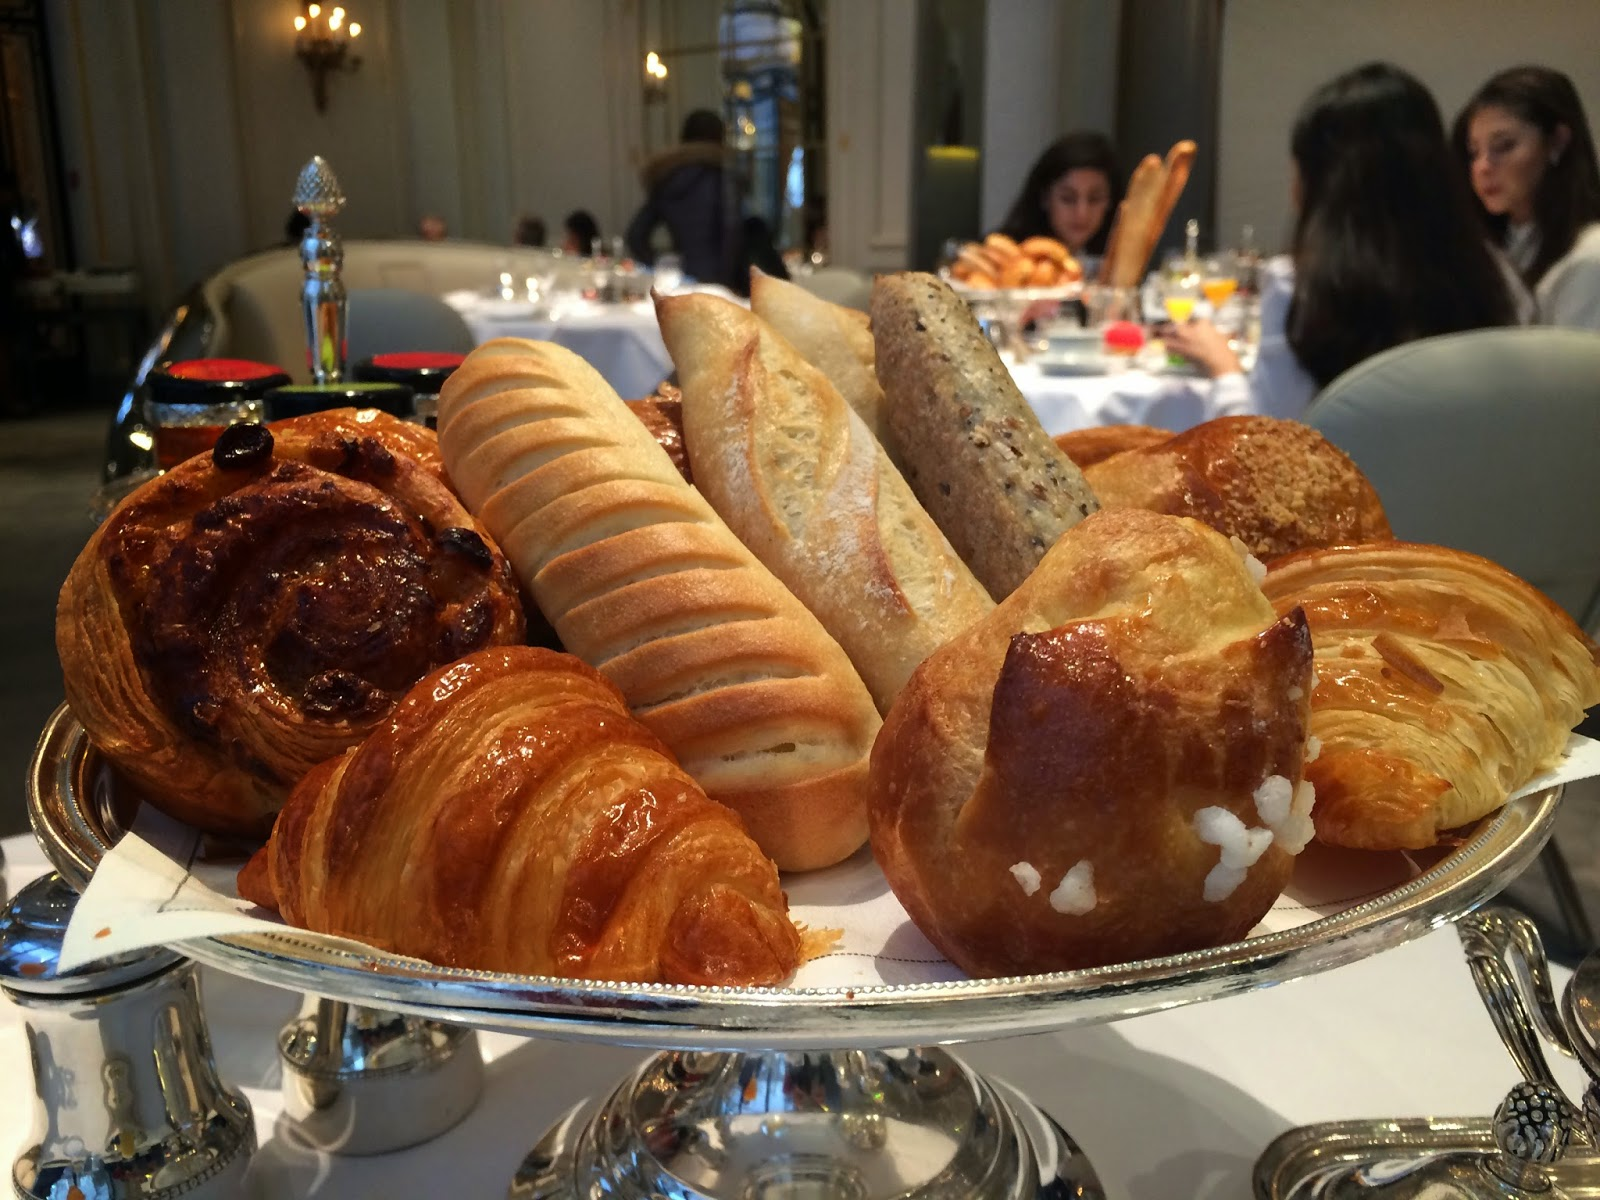 Pastries at the Haute Couture Brunch, Alain Ducasse au Plaza Athénée, Paris